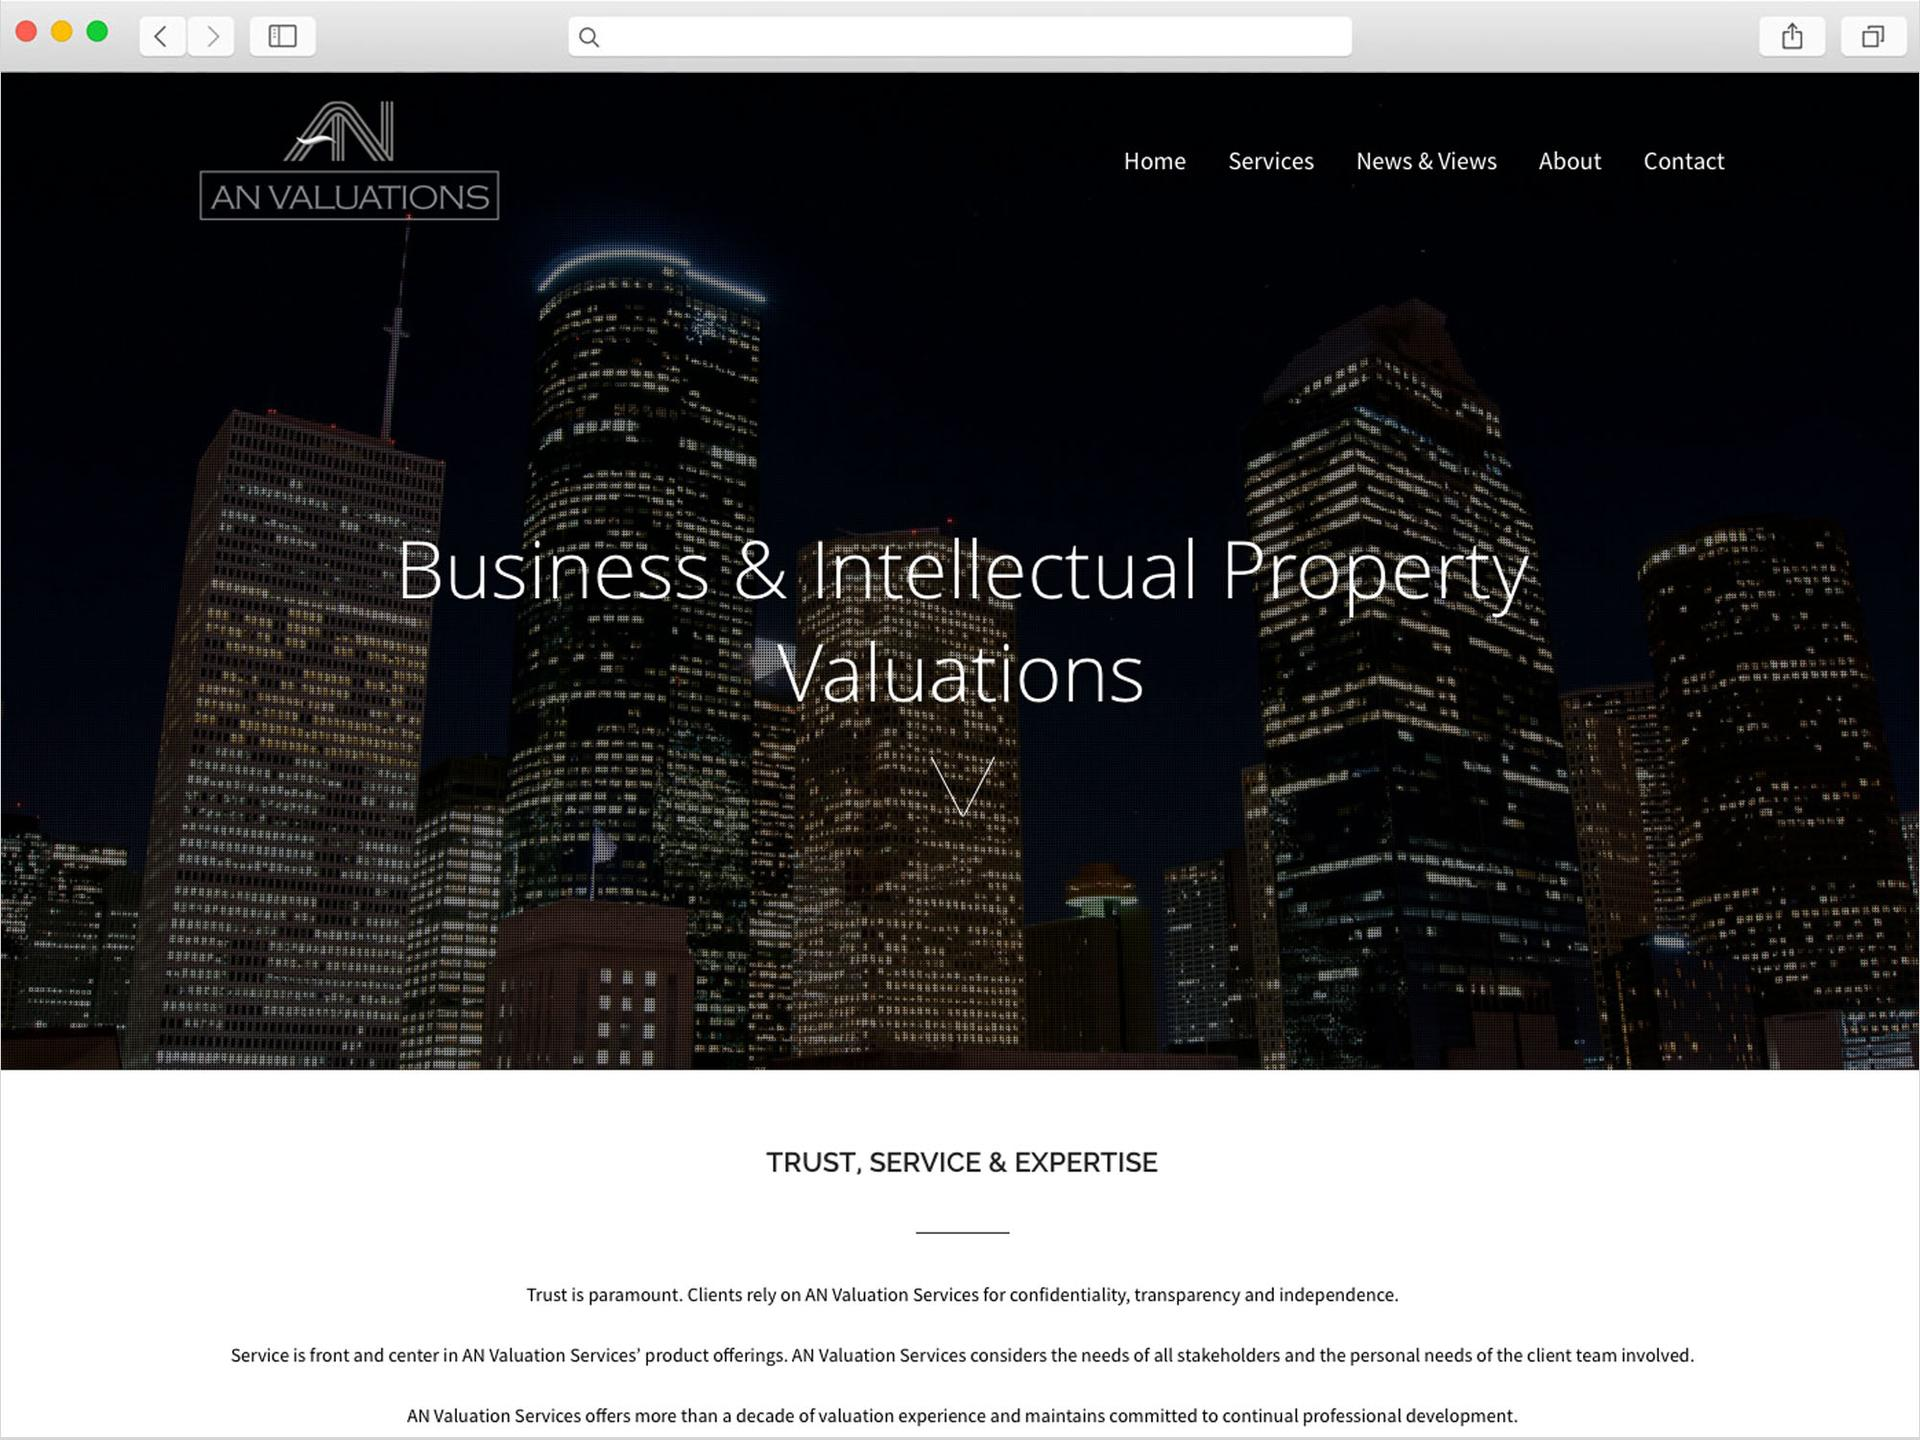 anvaluations-website